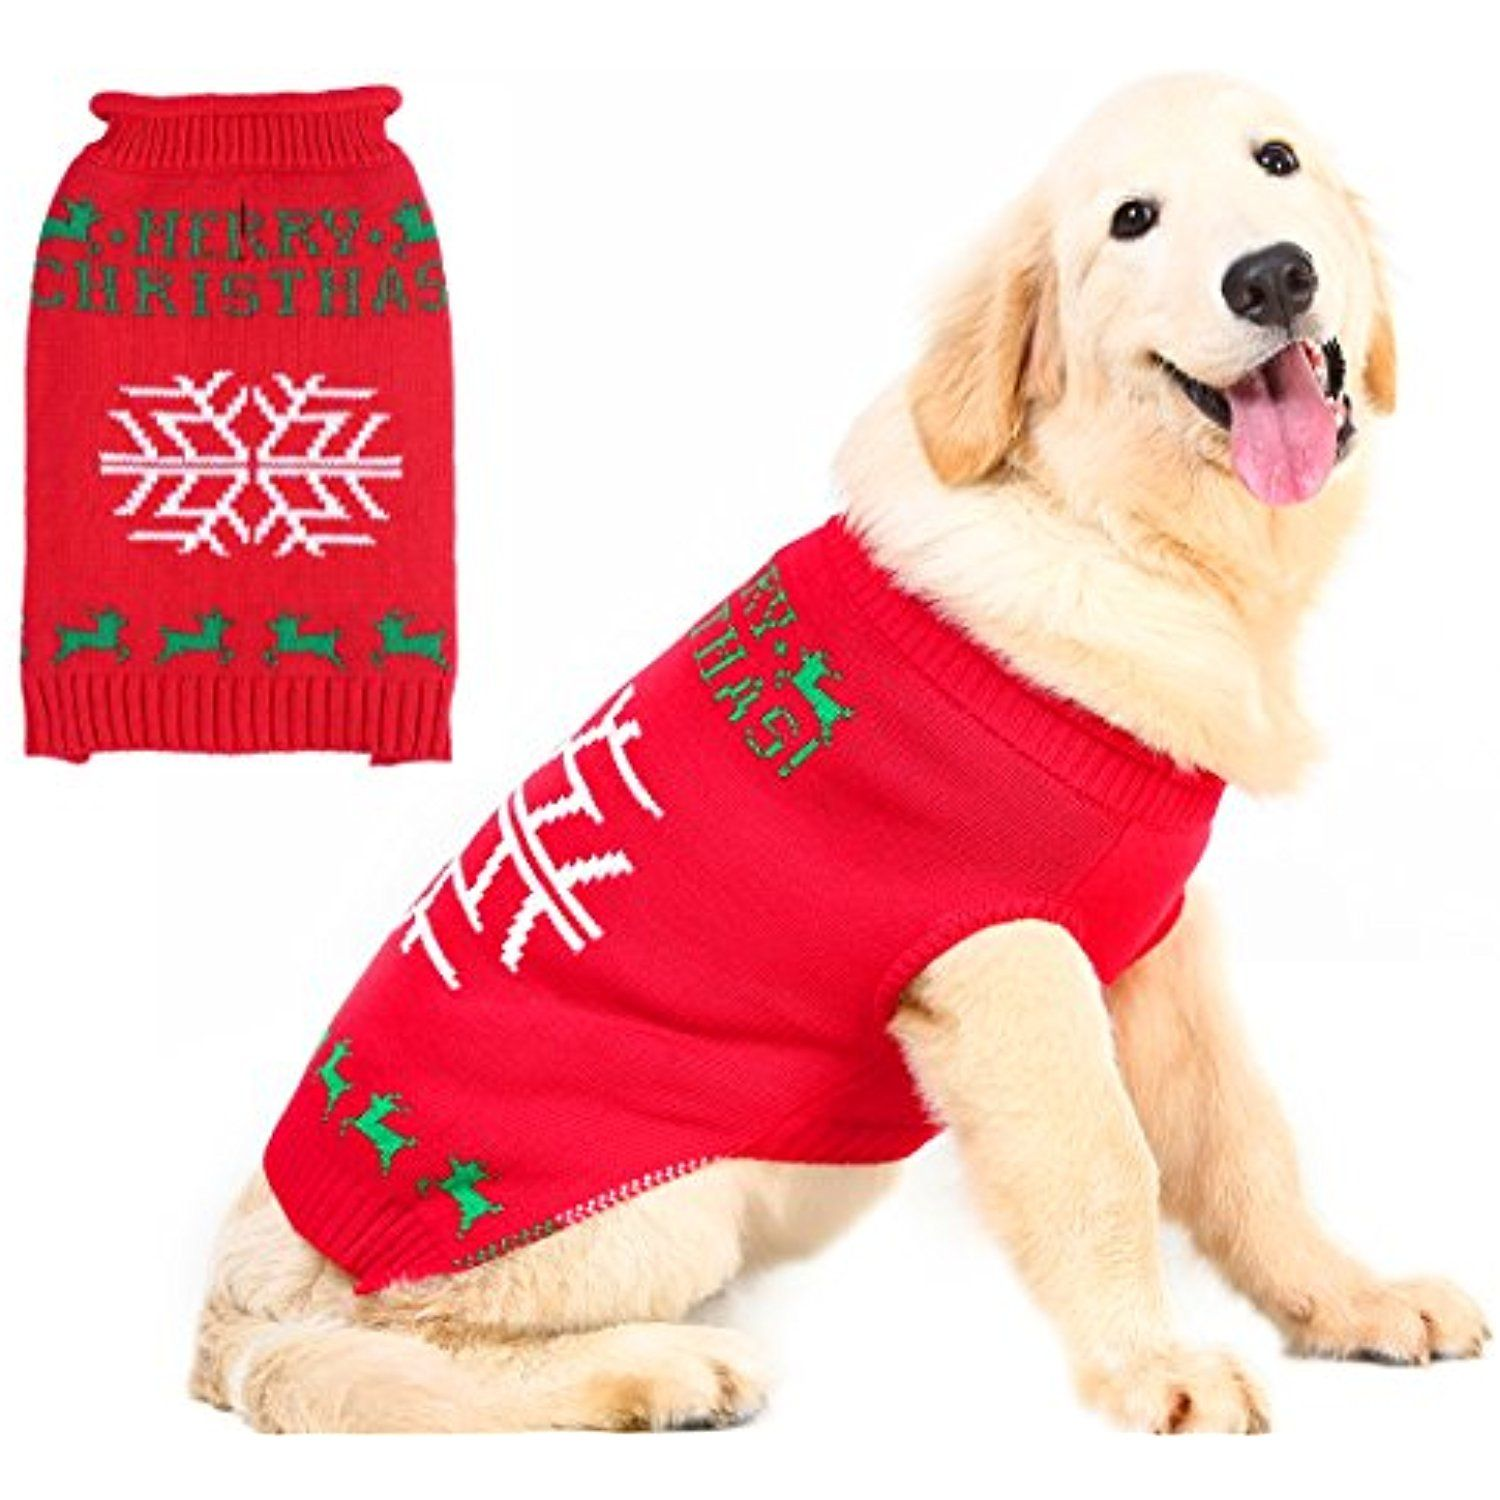 ugly christmas dog sweater holiday snowflake style pet festive coat puppy winter clothes red large - Ugly Christmas Dog Sweater